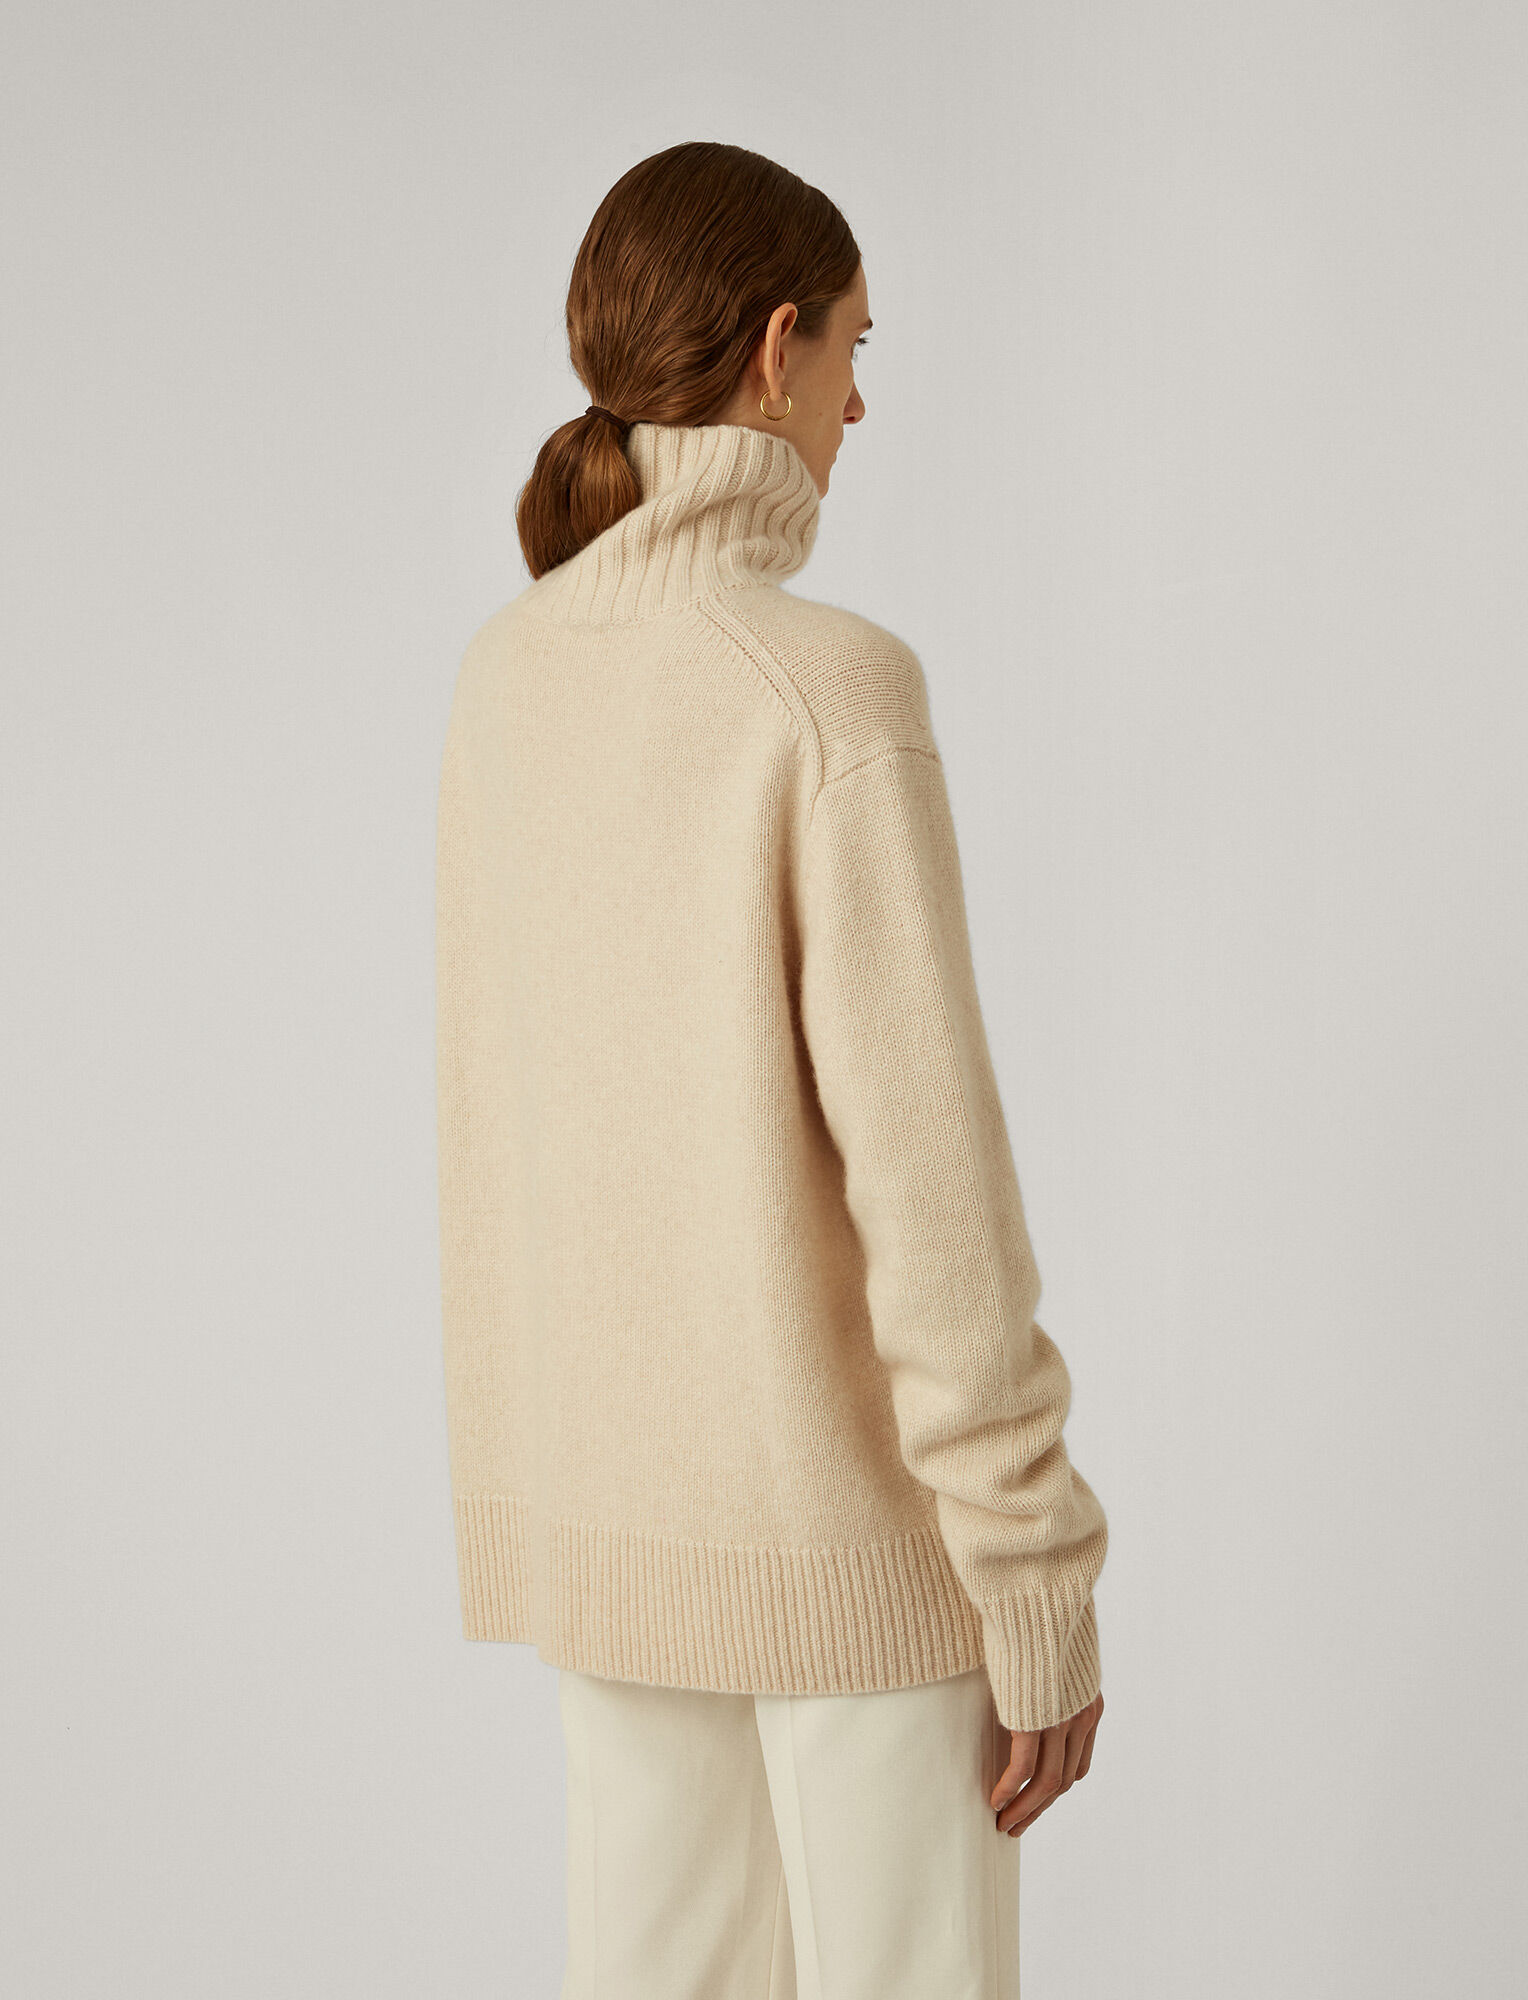 Joseph, Cashmere Luxe High Neck Jumper, in IVORY